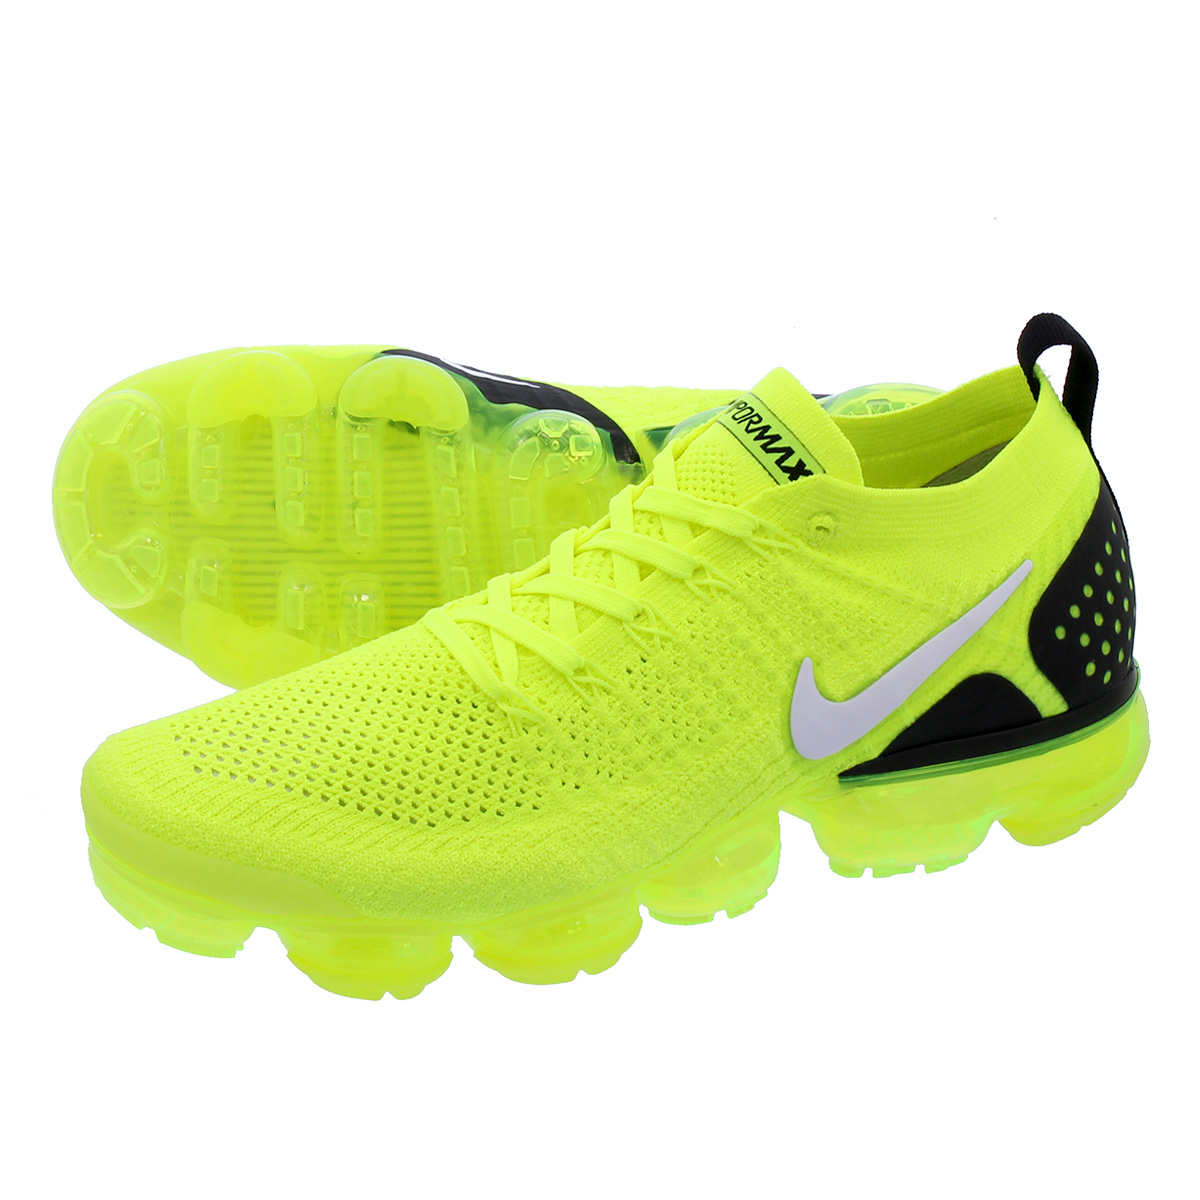 huge discount d2b55 ea1a1 NIKE AIR VAPORMAX FLYKNIT 2 Nike vapor max fried food knit 2 VOLT/BLACK  942,842-700